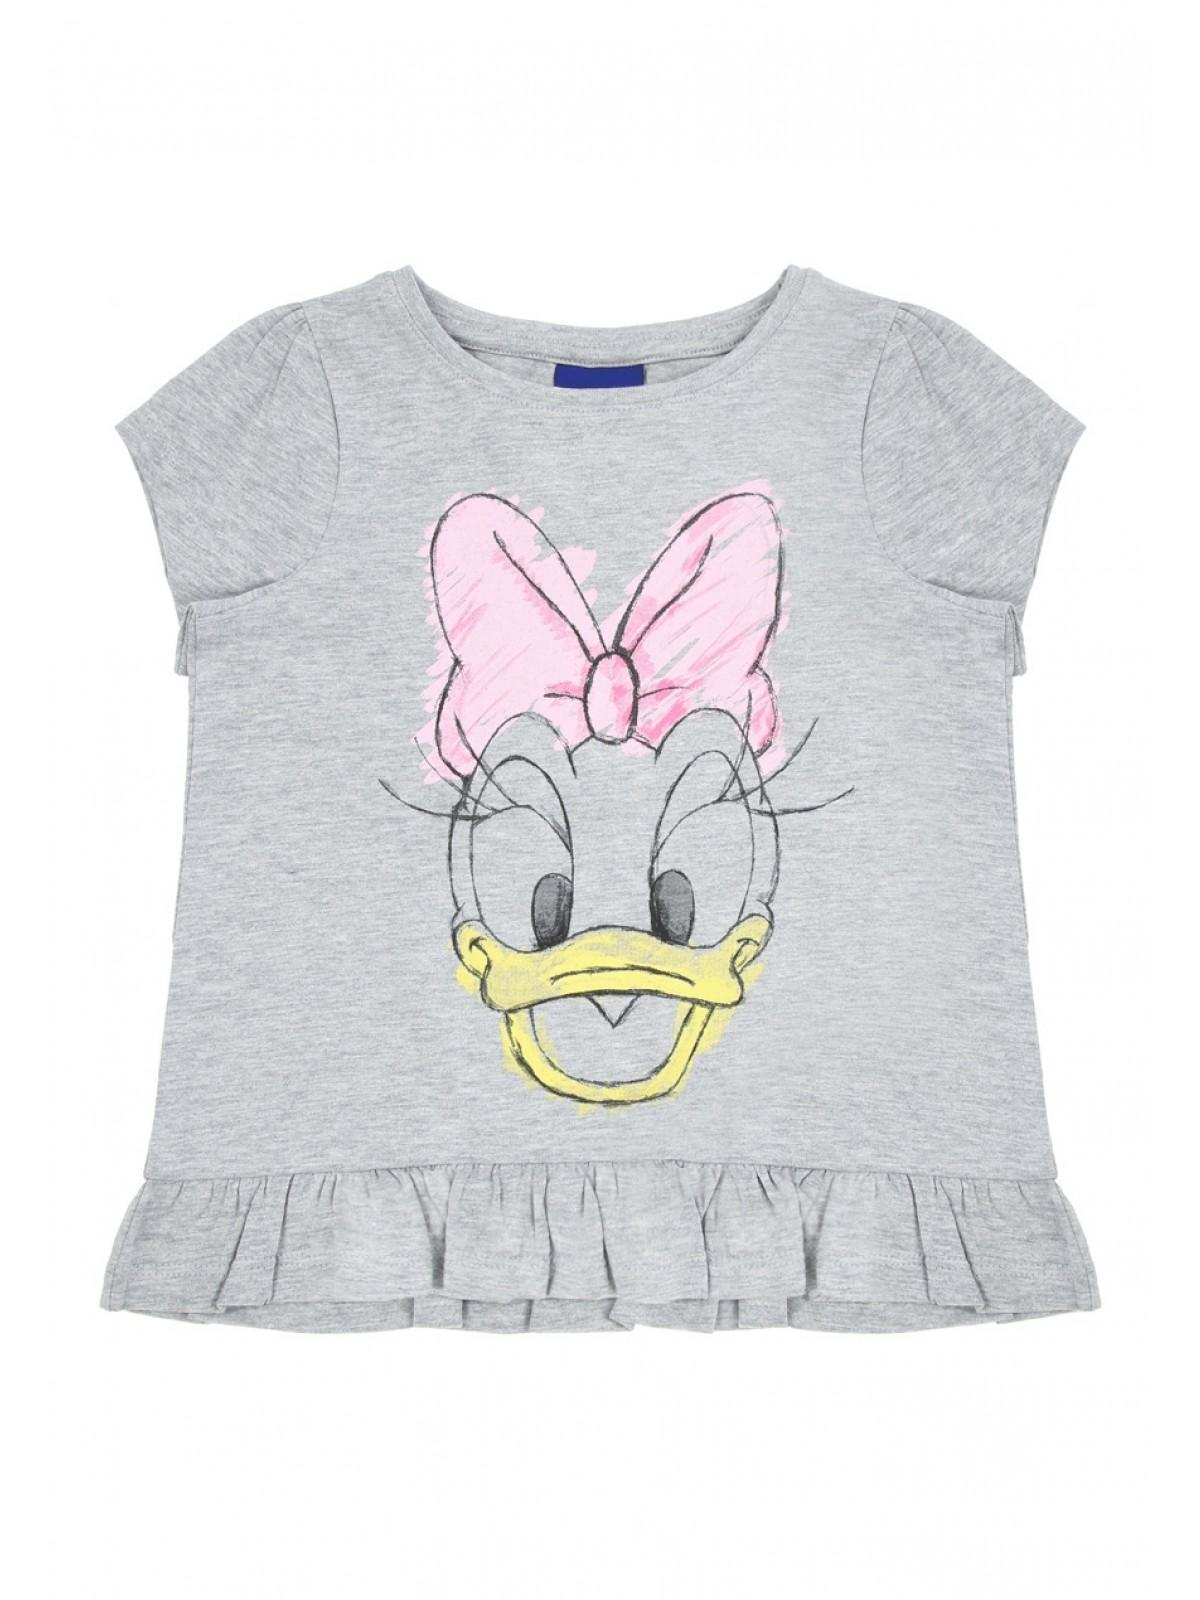 bb4cf656 Home; Younger Girls Grey Daisy Duck T-shirt. Back. PreviousNext